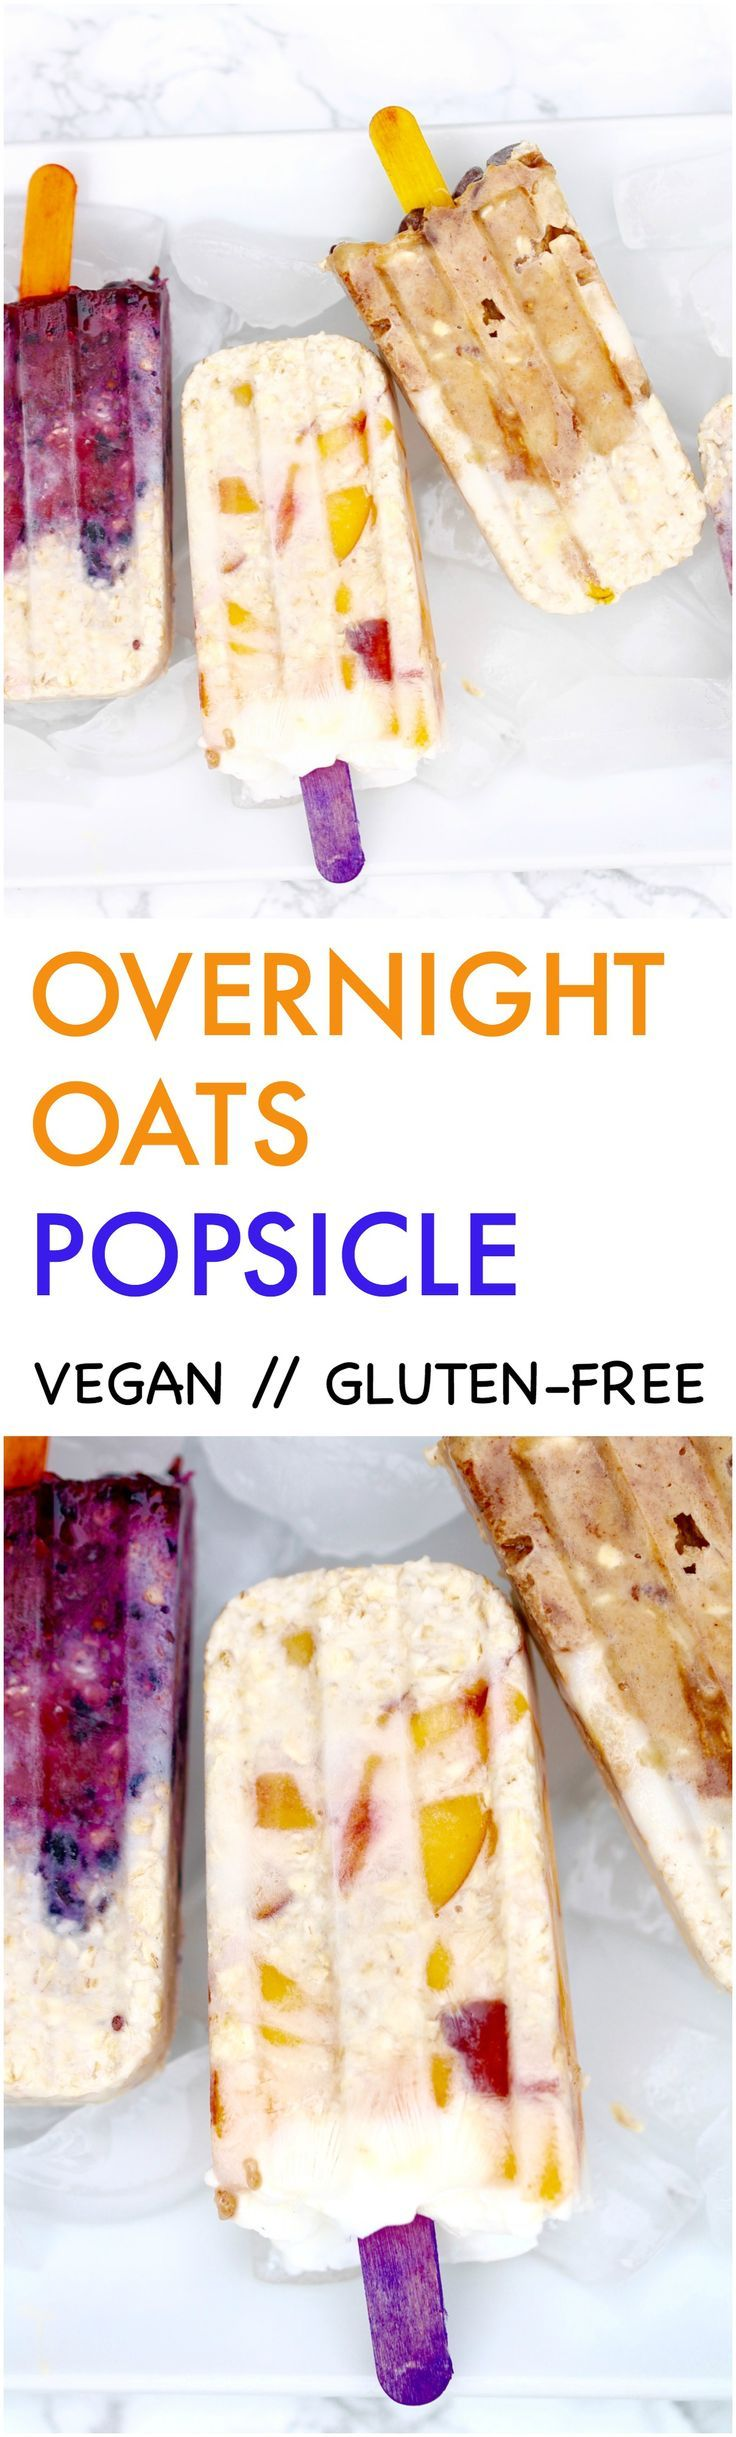 Turn your favorite overnight oats into popsicles. It is a nutritious and fun treat for Summer and great for grab n' go breakfast & snack.